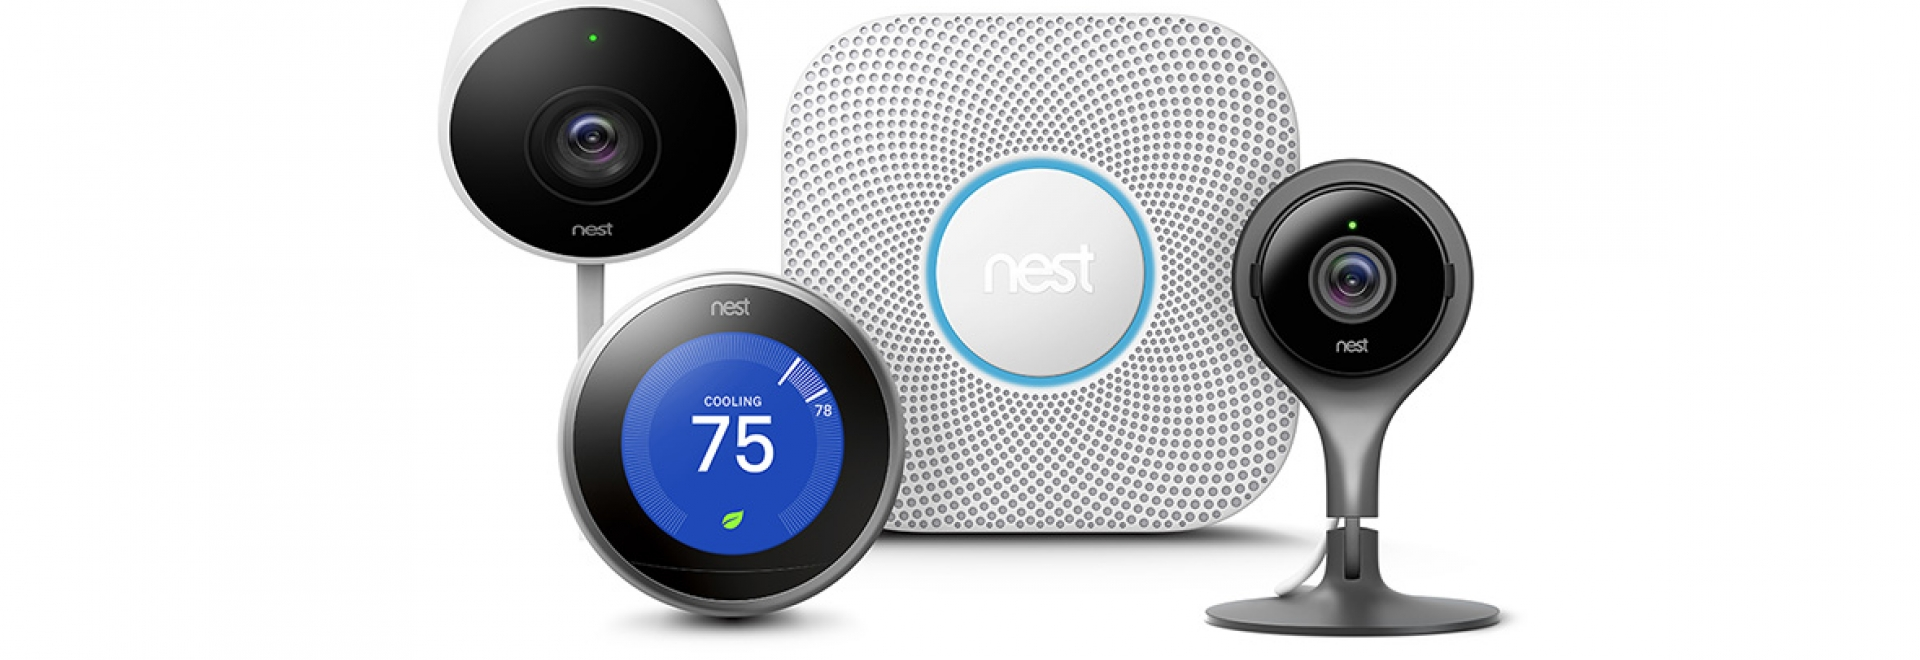 Part of the Nest Product Lineup - check it out!